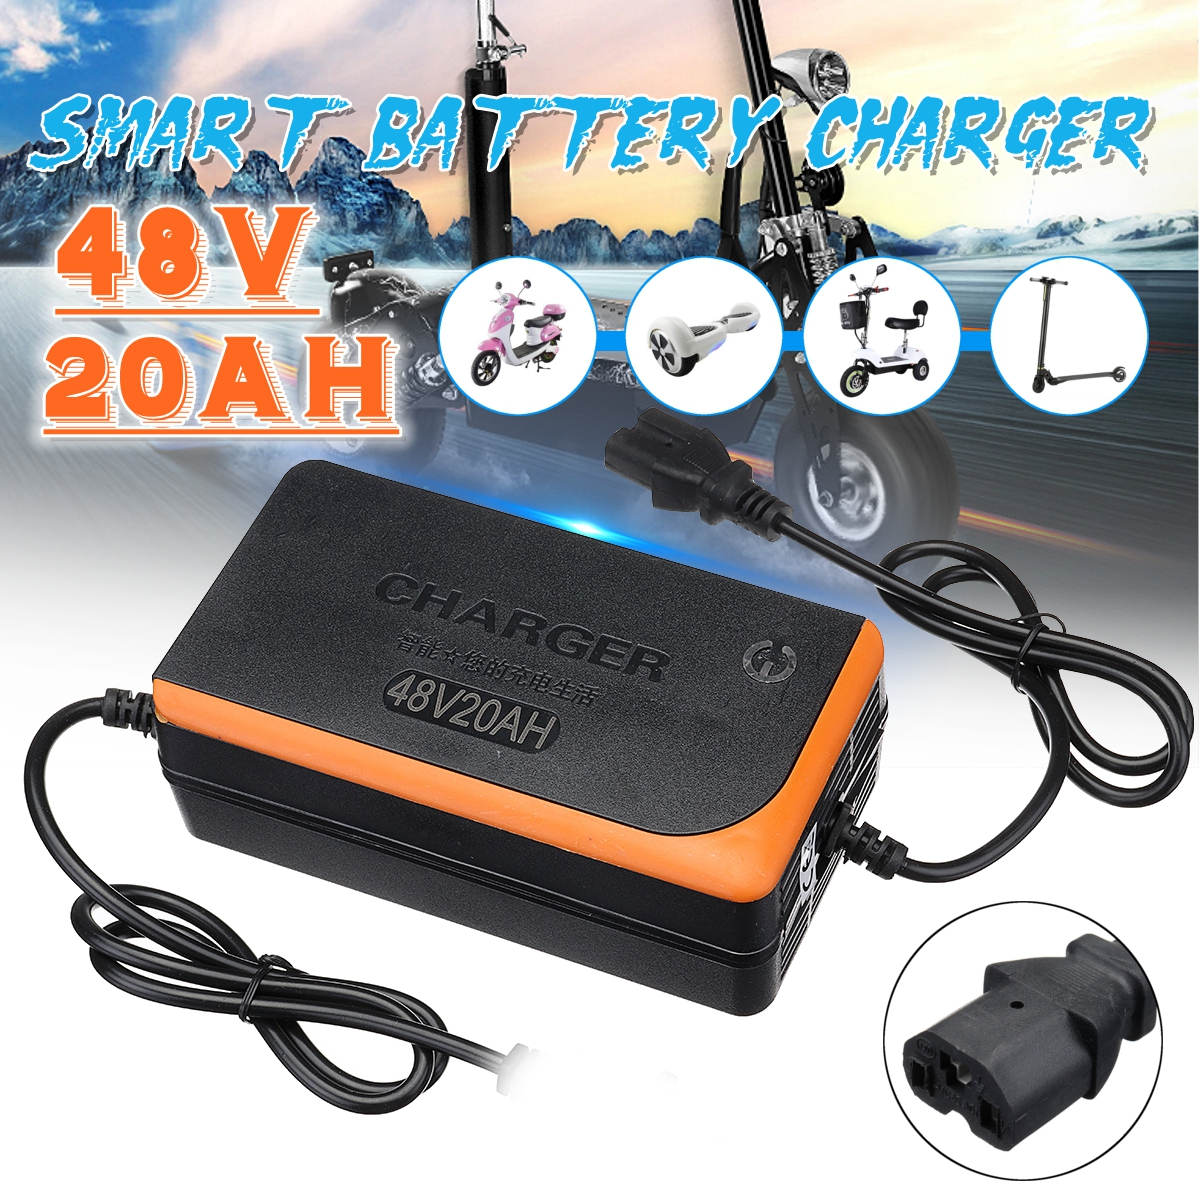 48V 20AH US Plug Lead Acid Battery Charger For Electric Bicycle Bike Scooters